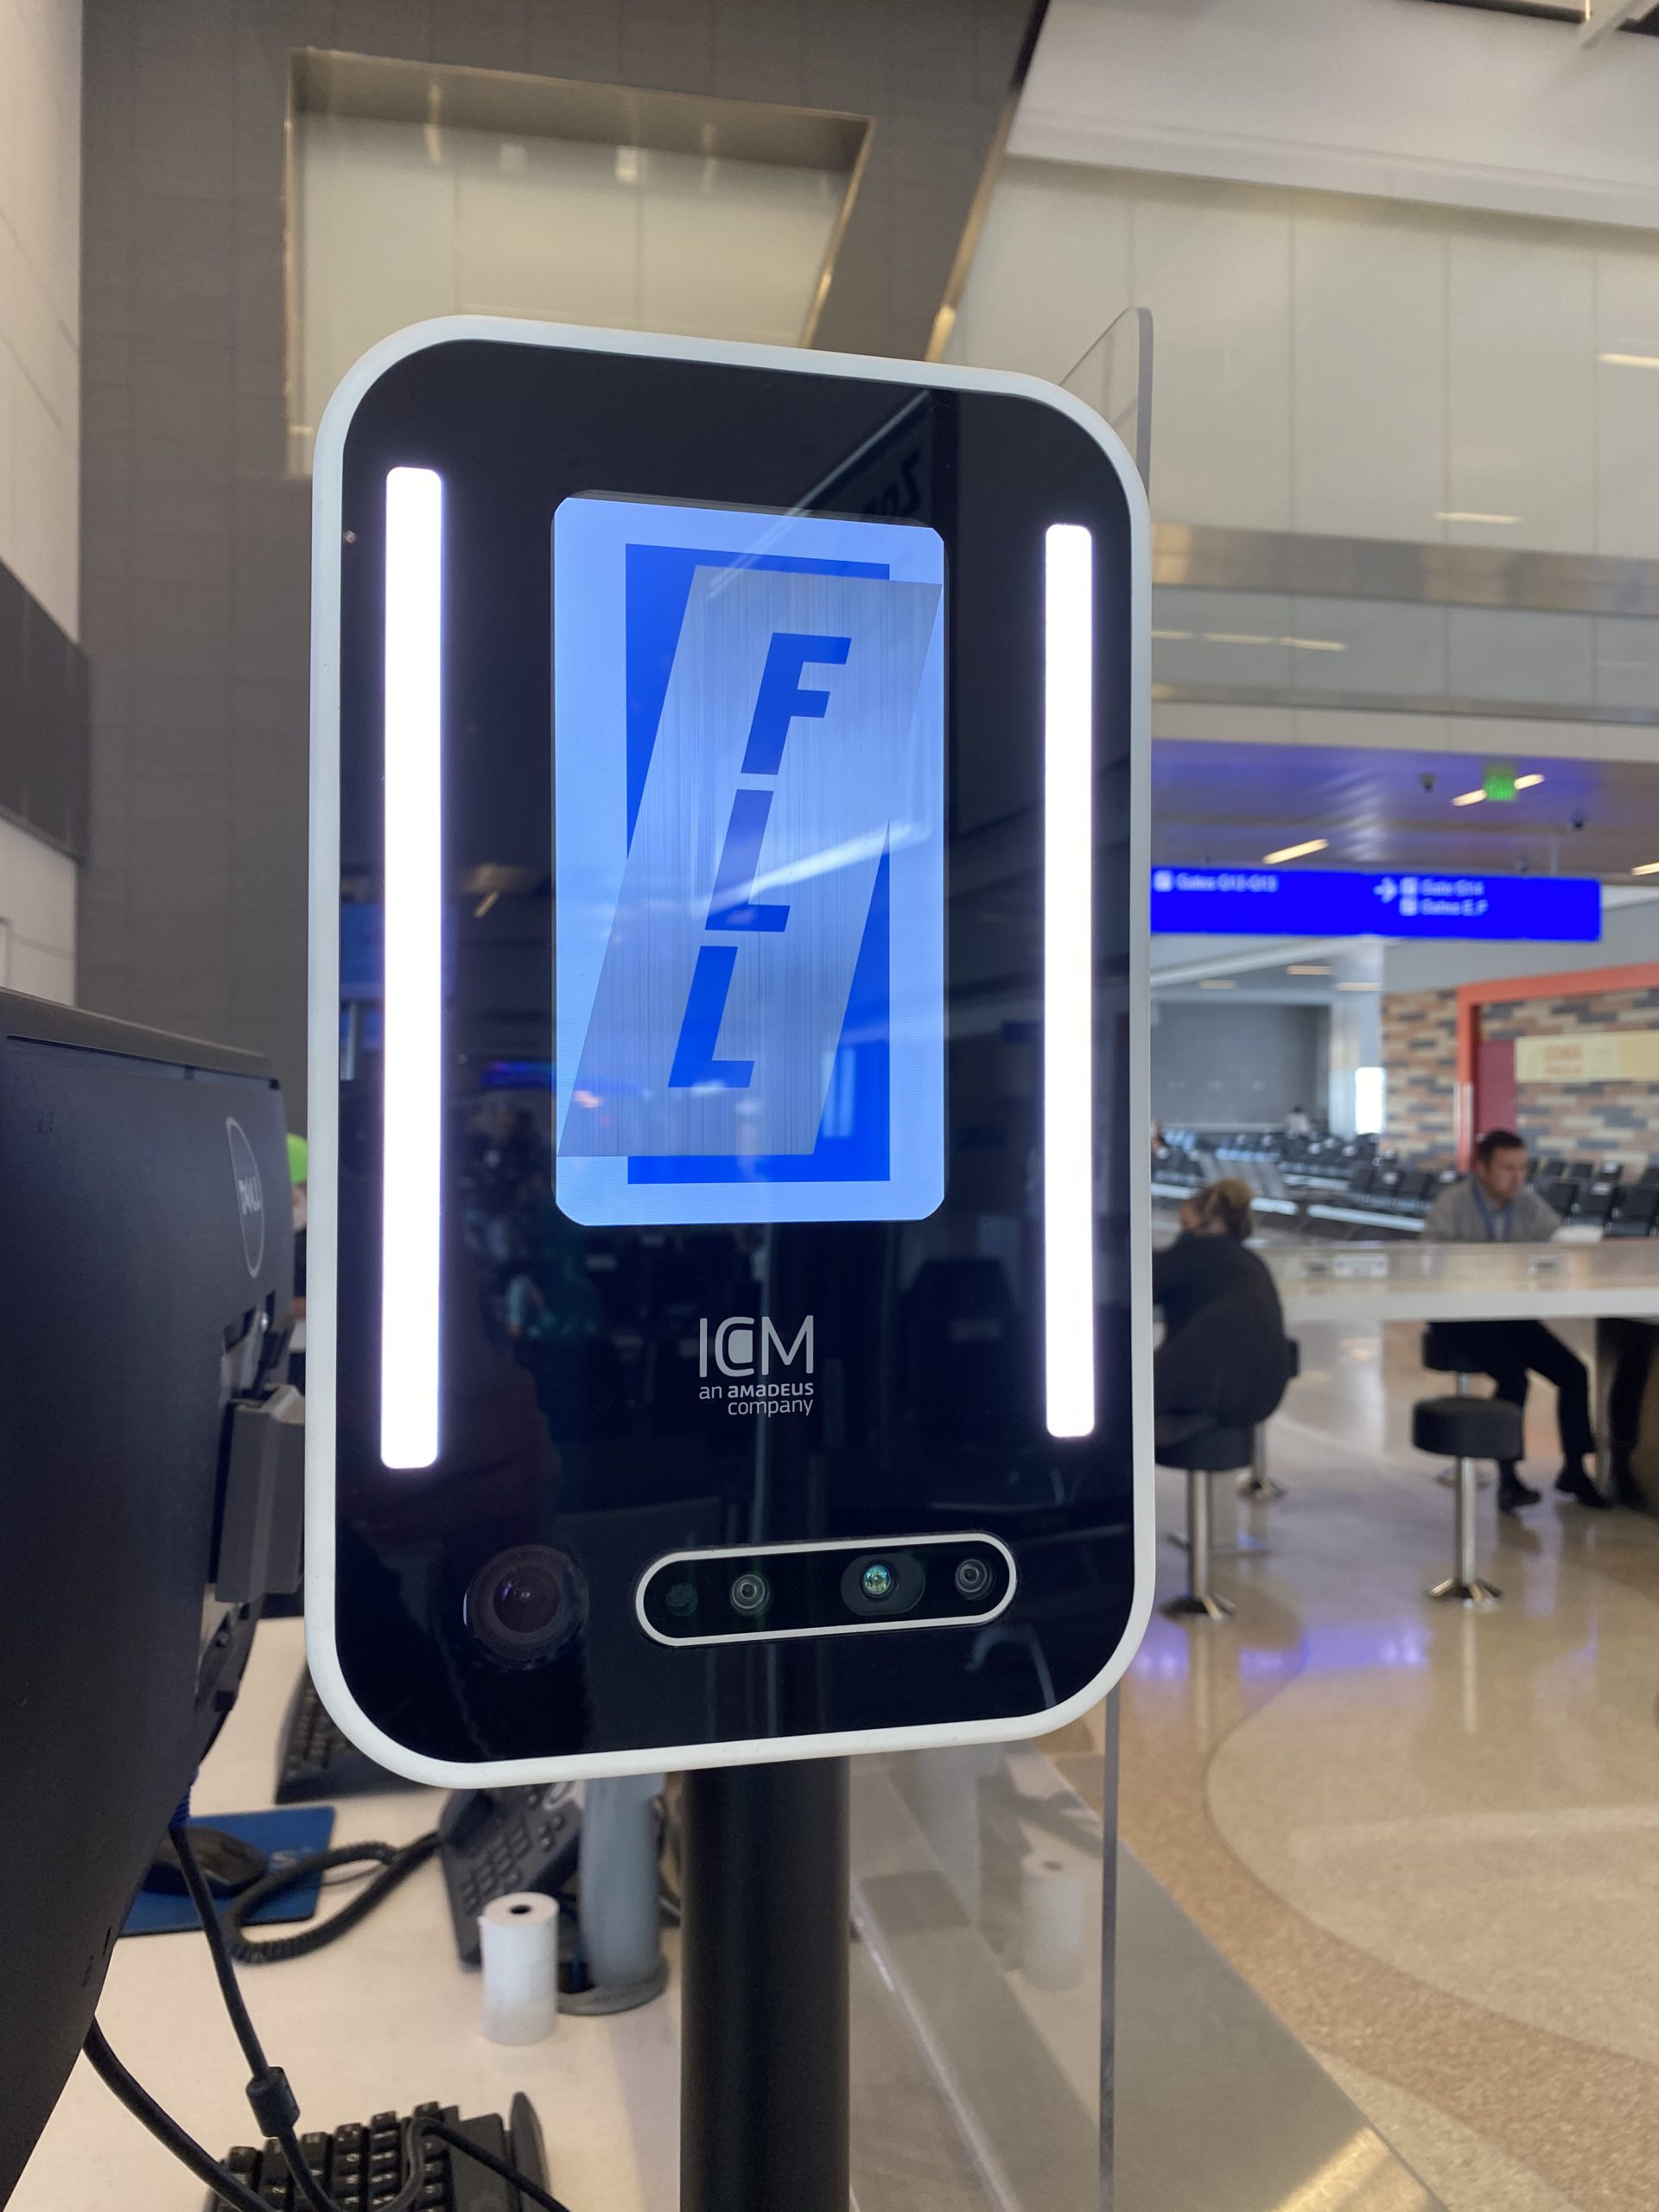 Fort Lauderdale-Hollywood International Airport deploys biometric boarding with Amadeus